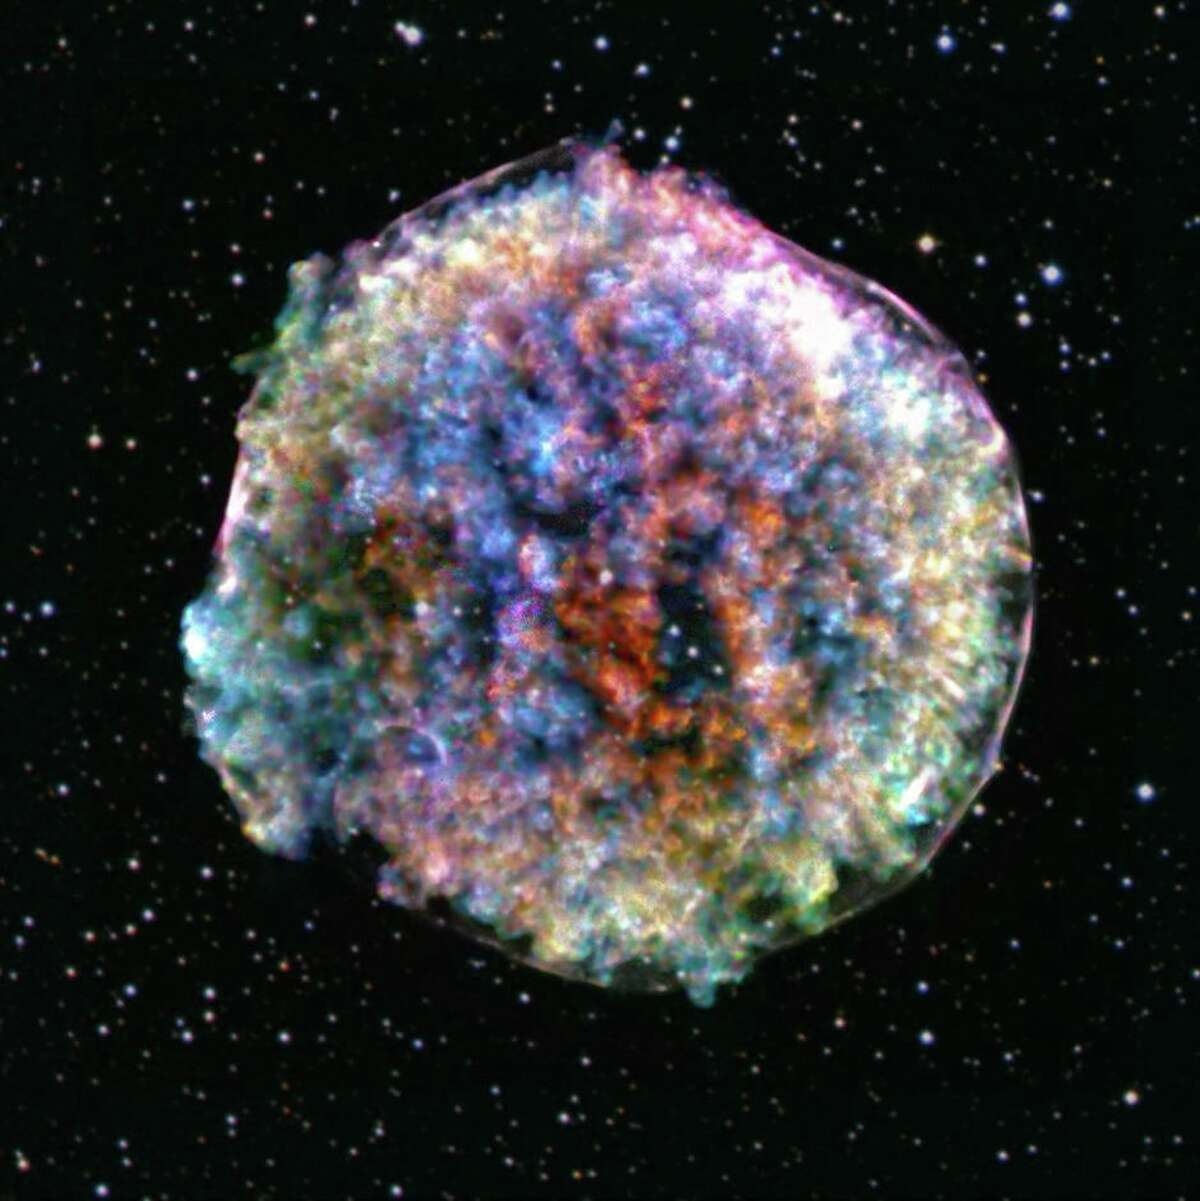 This composite image shows the Tycho supernova as seen by the Chandra X-ray Observatory.